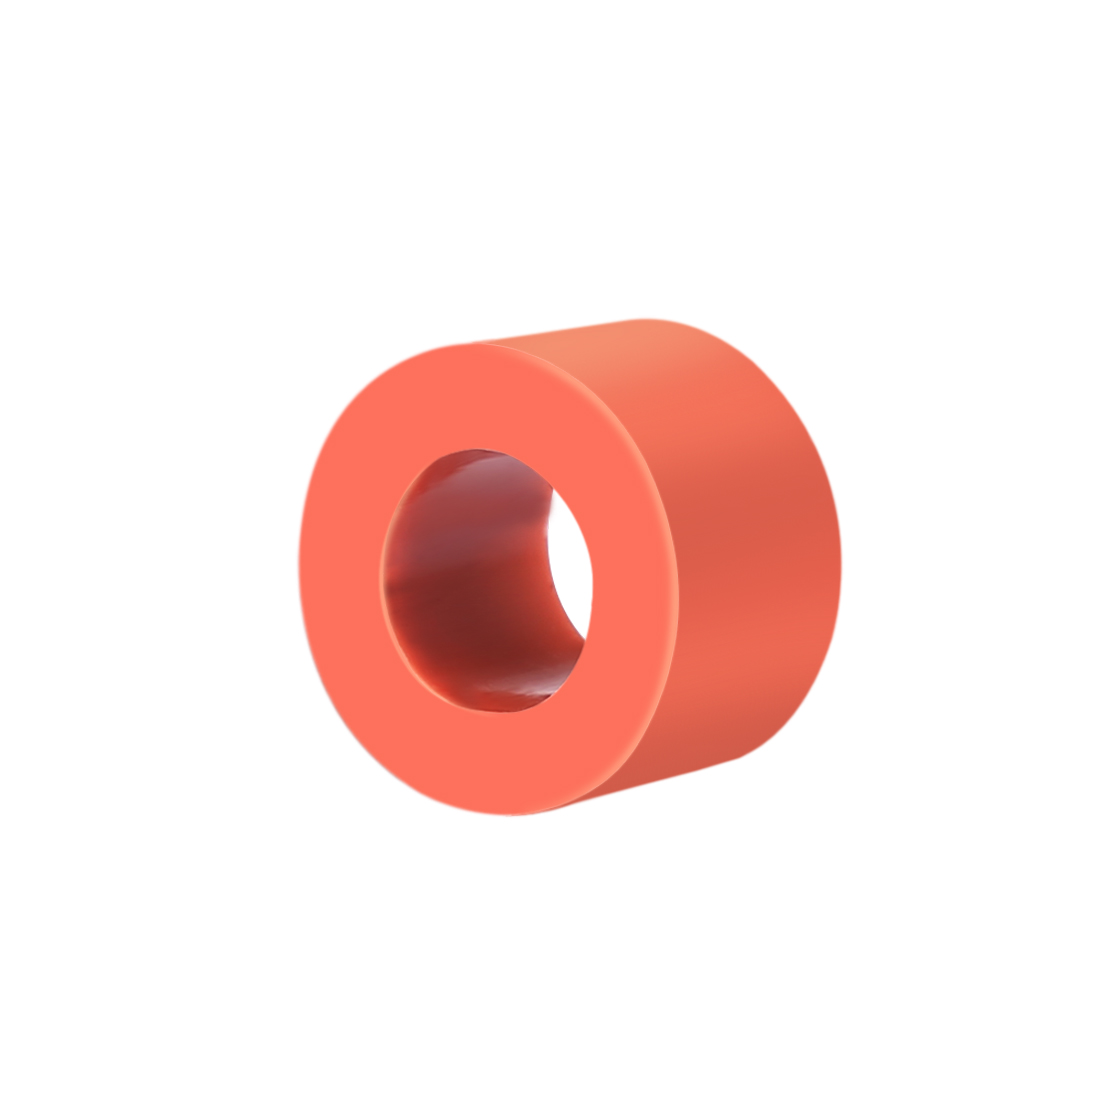 9.5mm Outer Barrel Accurate Barrel Shock Absorption Stabilized Loop Stable Ring For Water Gel Beads Blaster